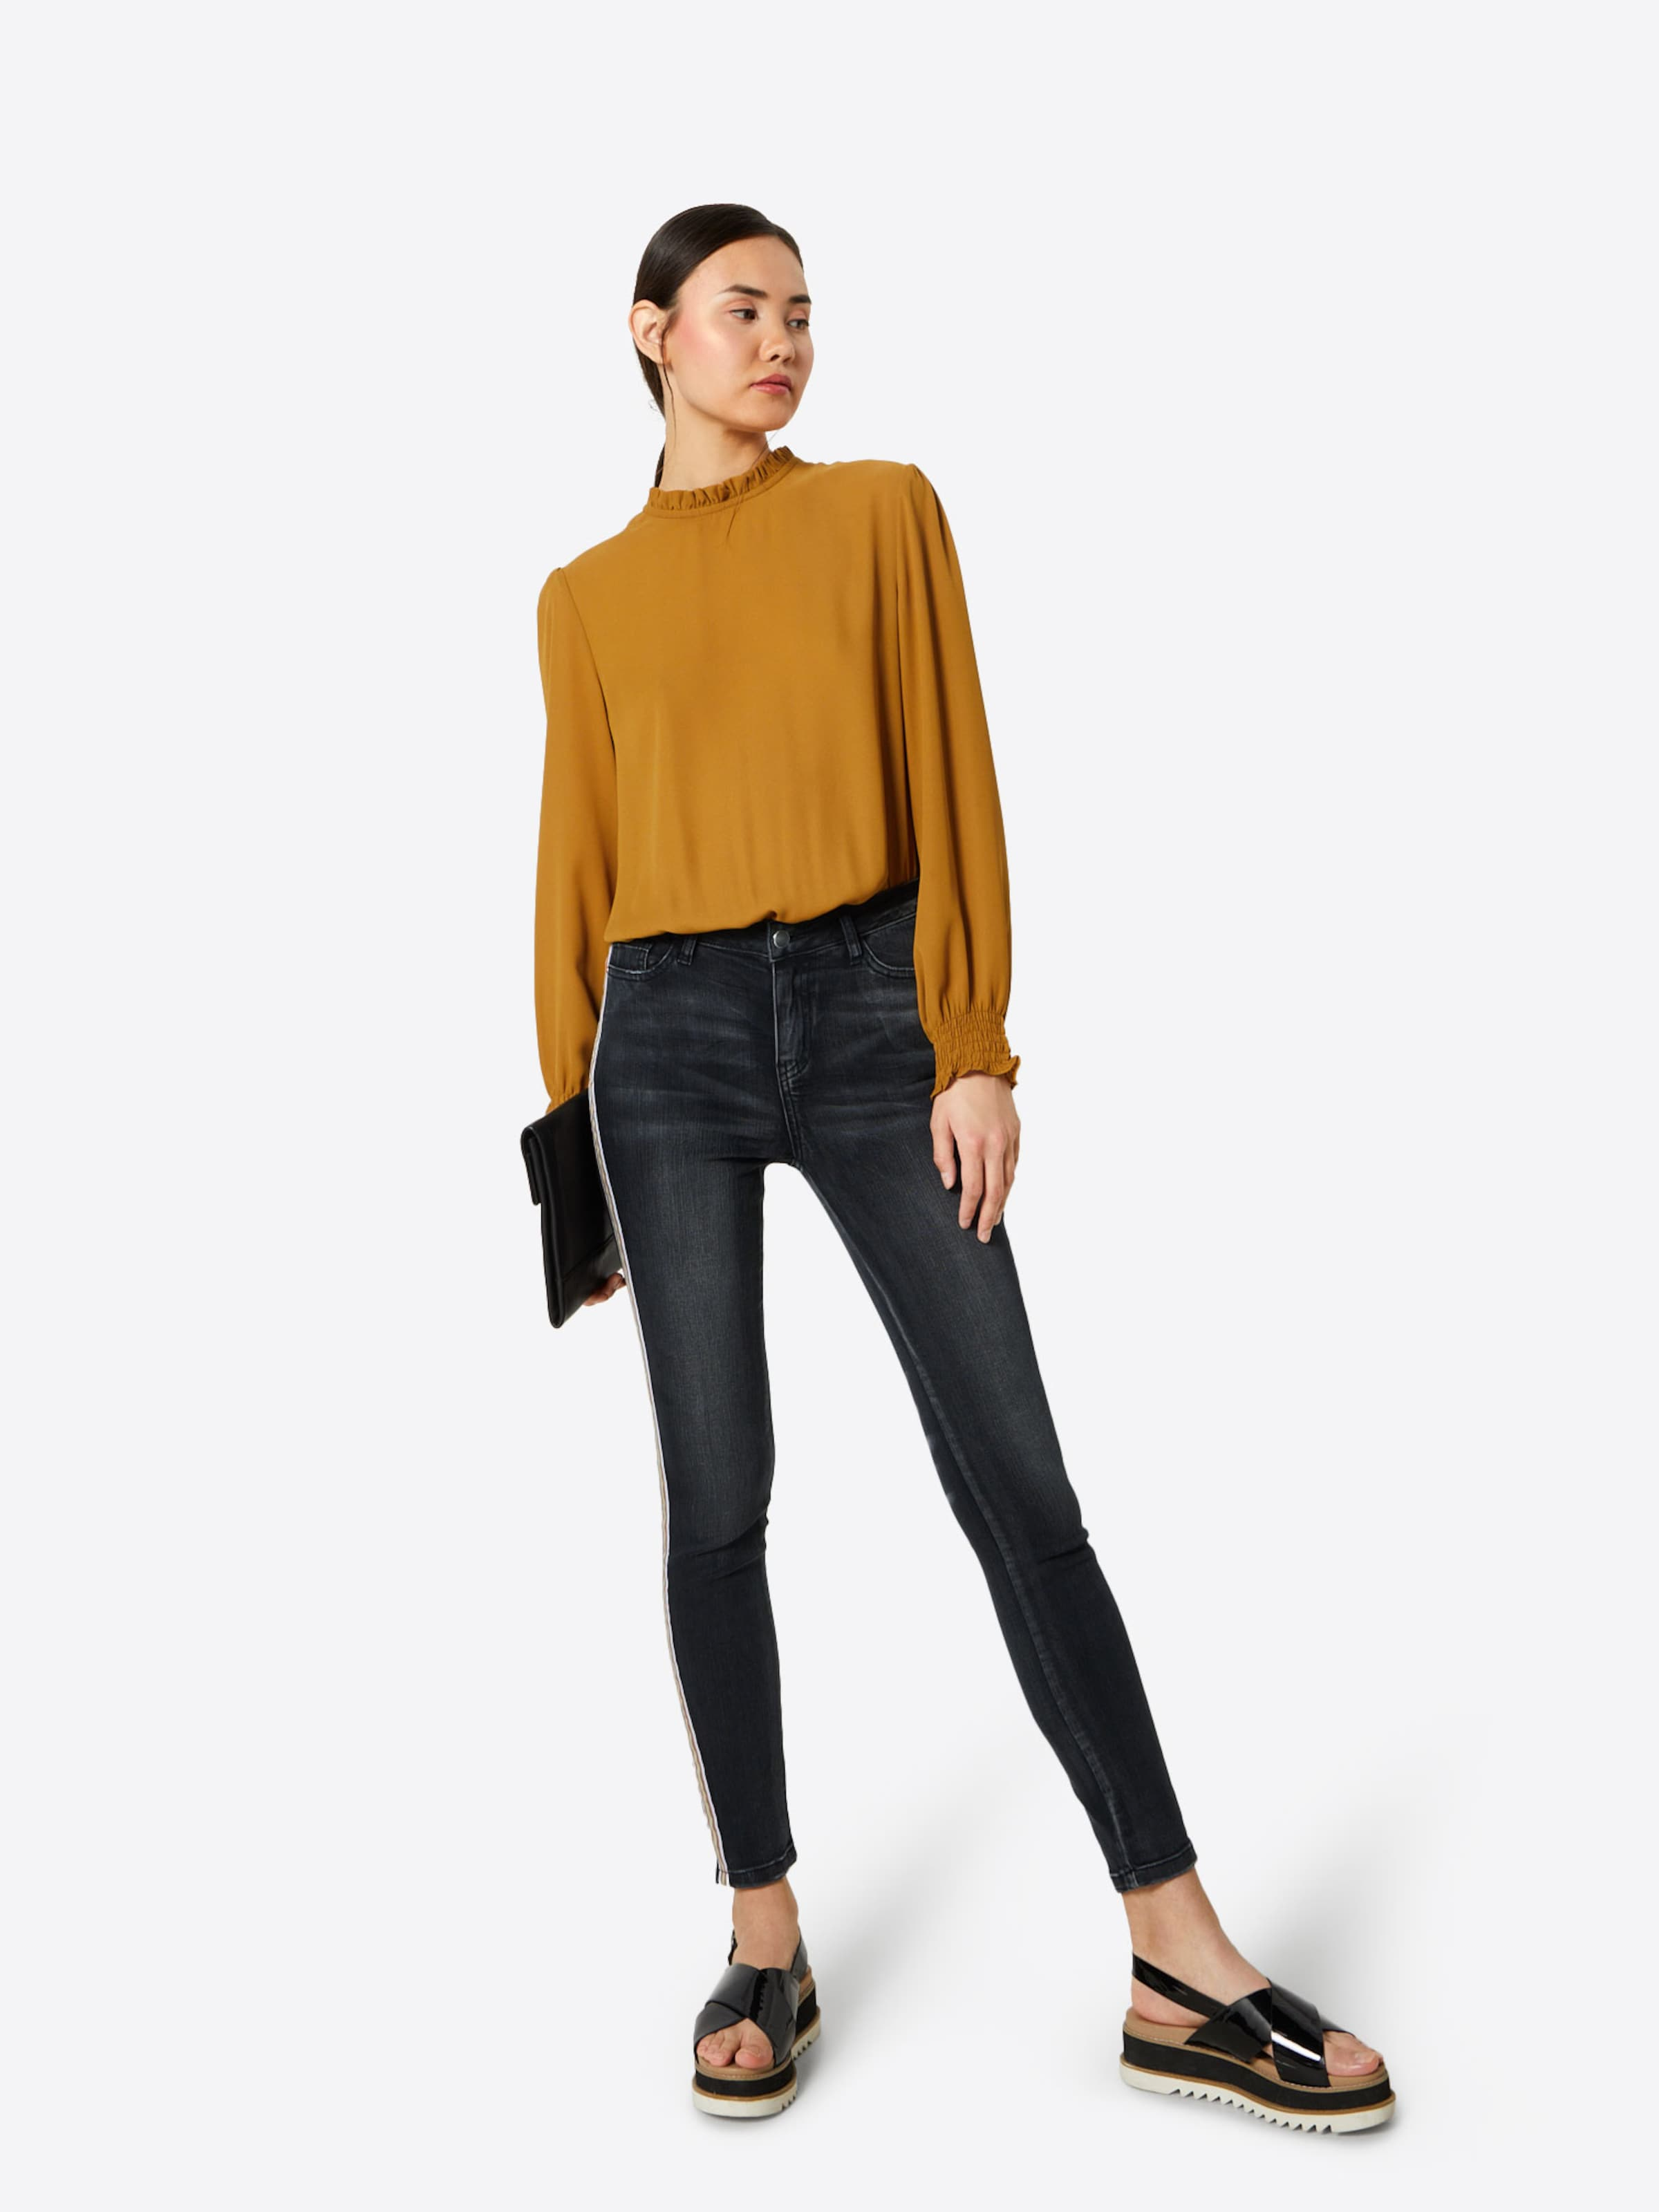 You Zwart 'maria' Jeans In About v8nNwOm0